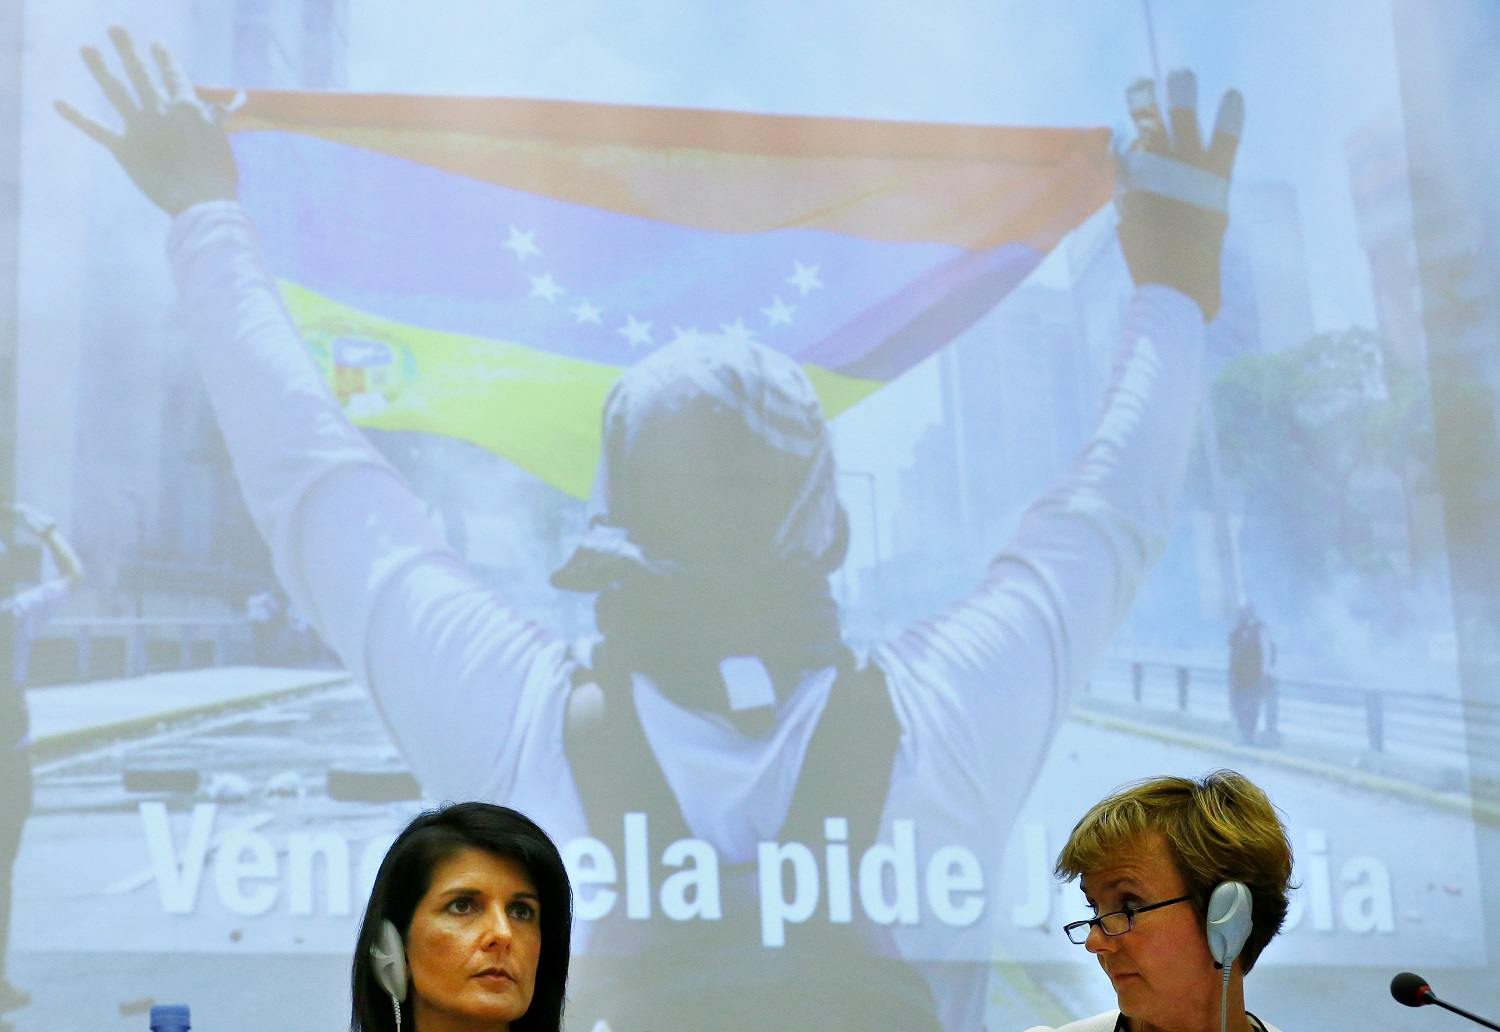 U.S. Ambassador to the United Nations Nikki Haley (L) attends a side-event of the Human Rights Council on the situation in Venezuela at the United Nations, in Geneva, Switzerland June 6, 2017. REUTERS/Denis Balibouse